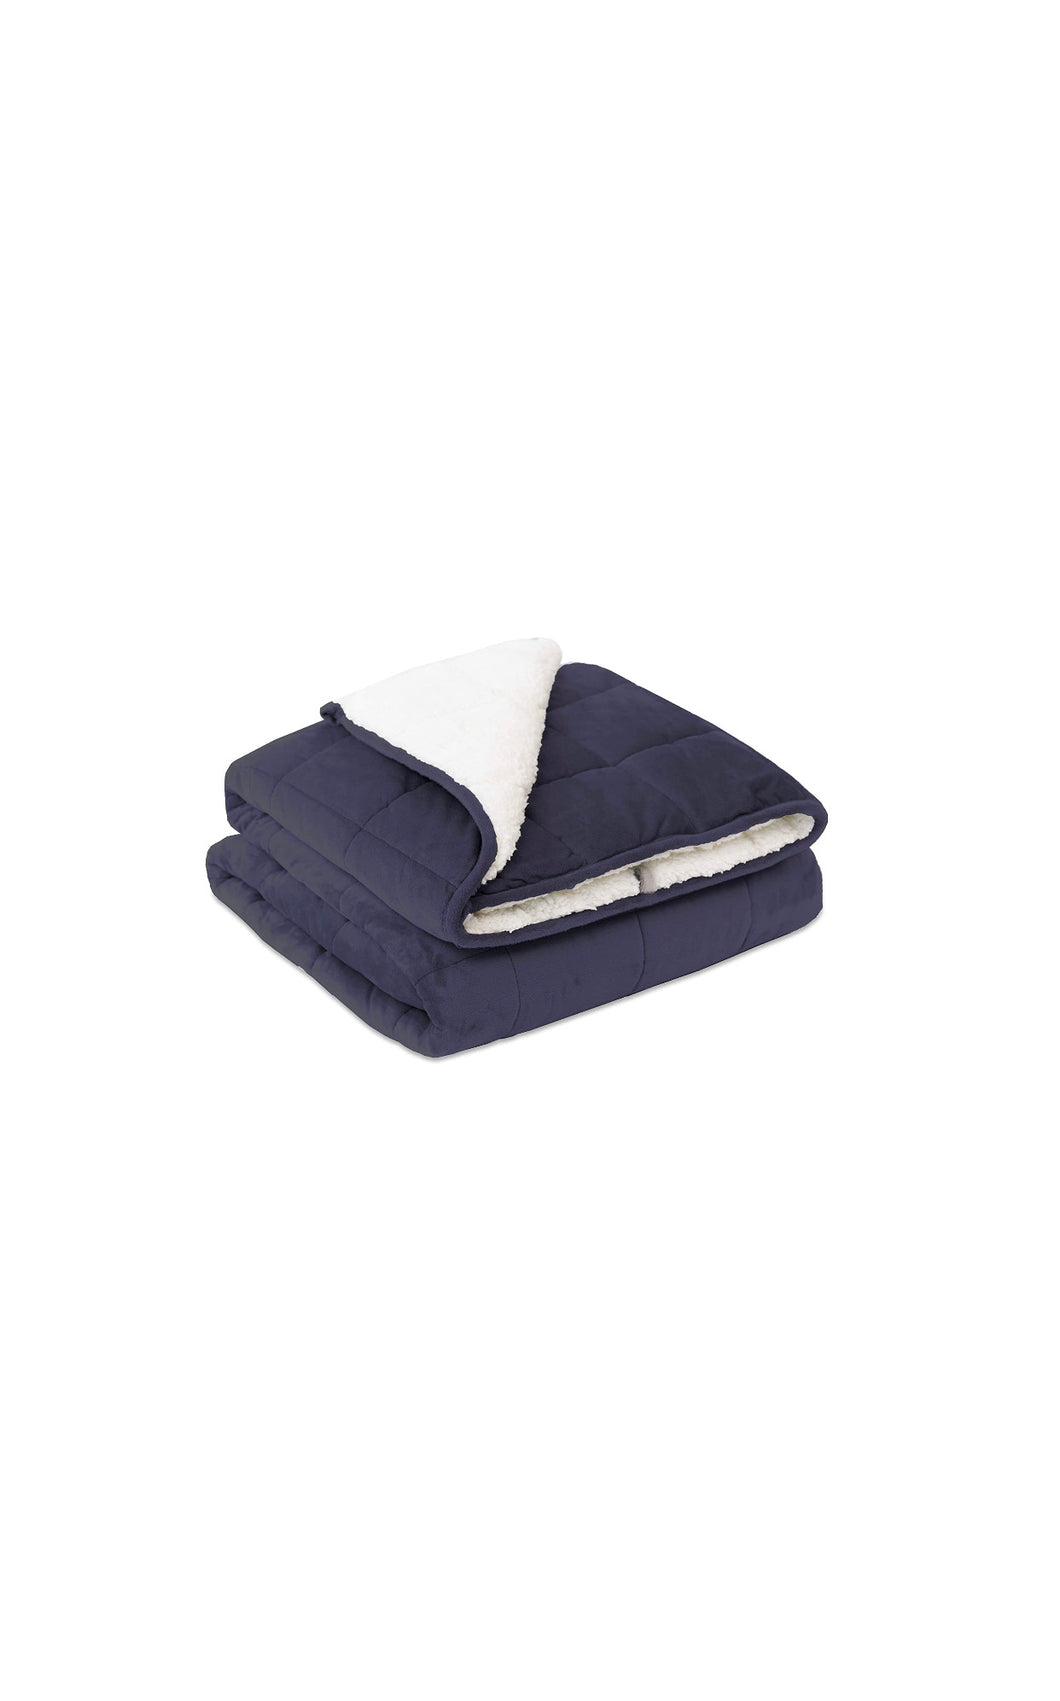 "Navy Blue & White Weighted Blanket (50"" x 60"")"